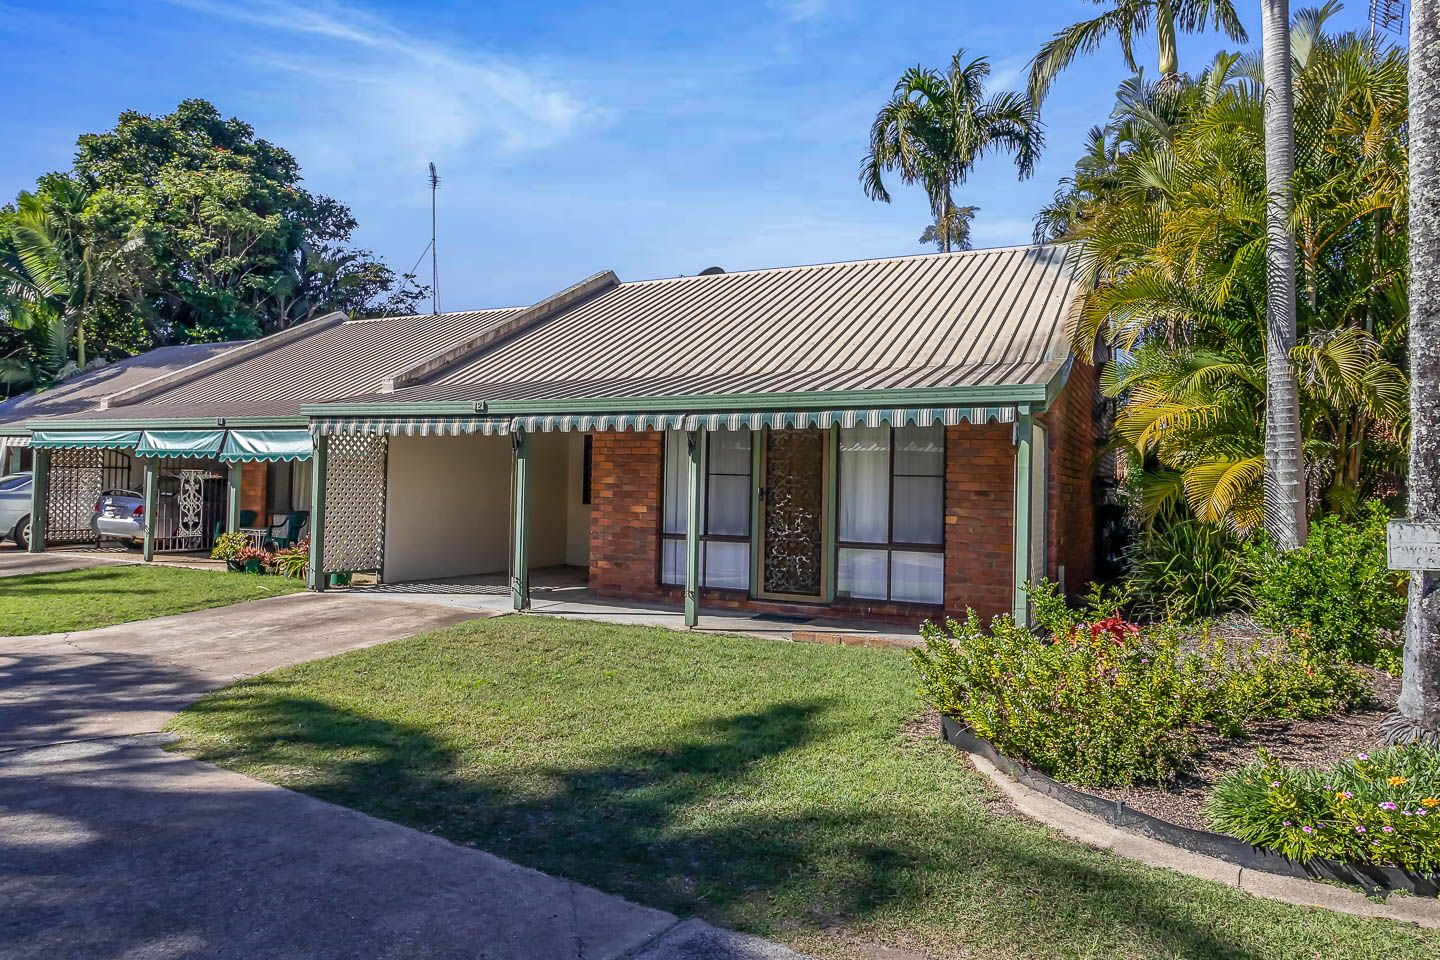 12/12 Denman Camp Road, Torquay QLD 4655, Image 0